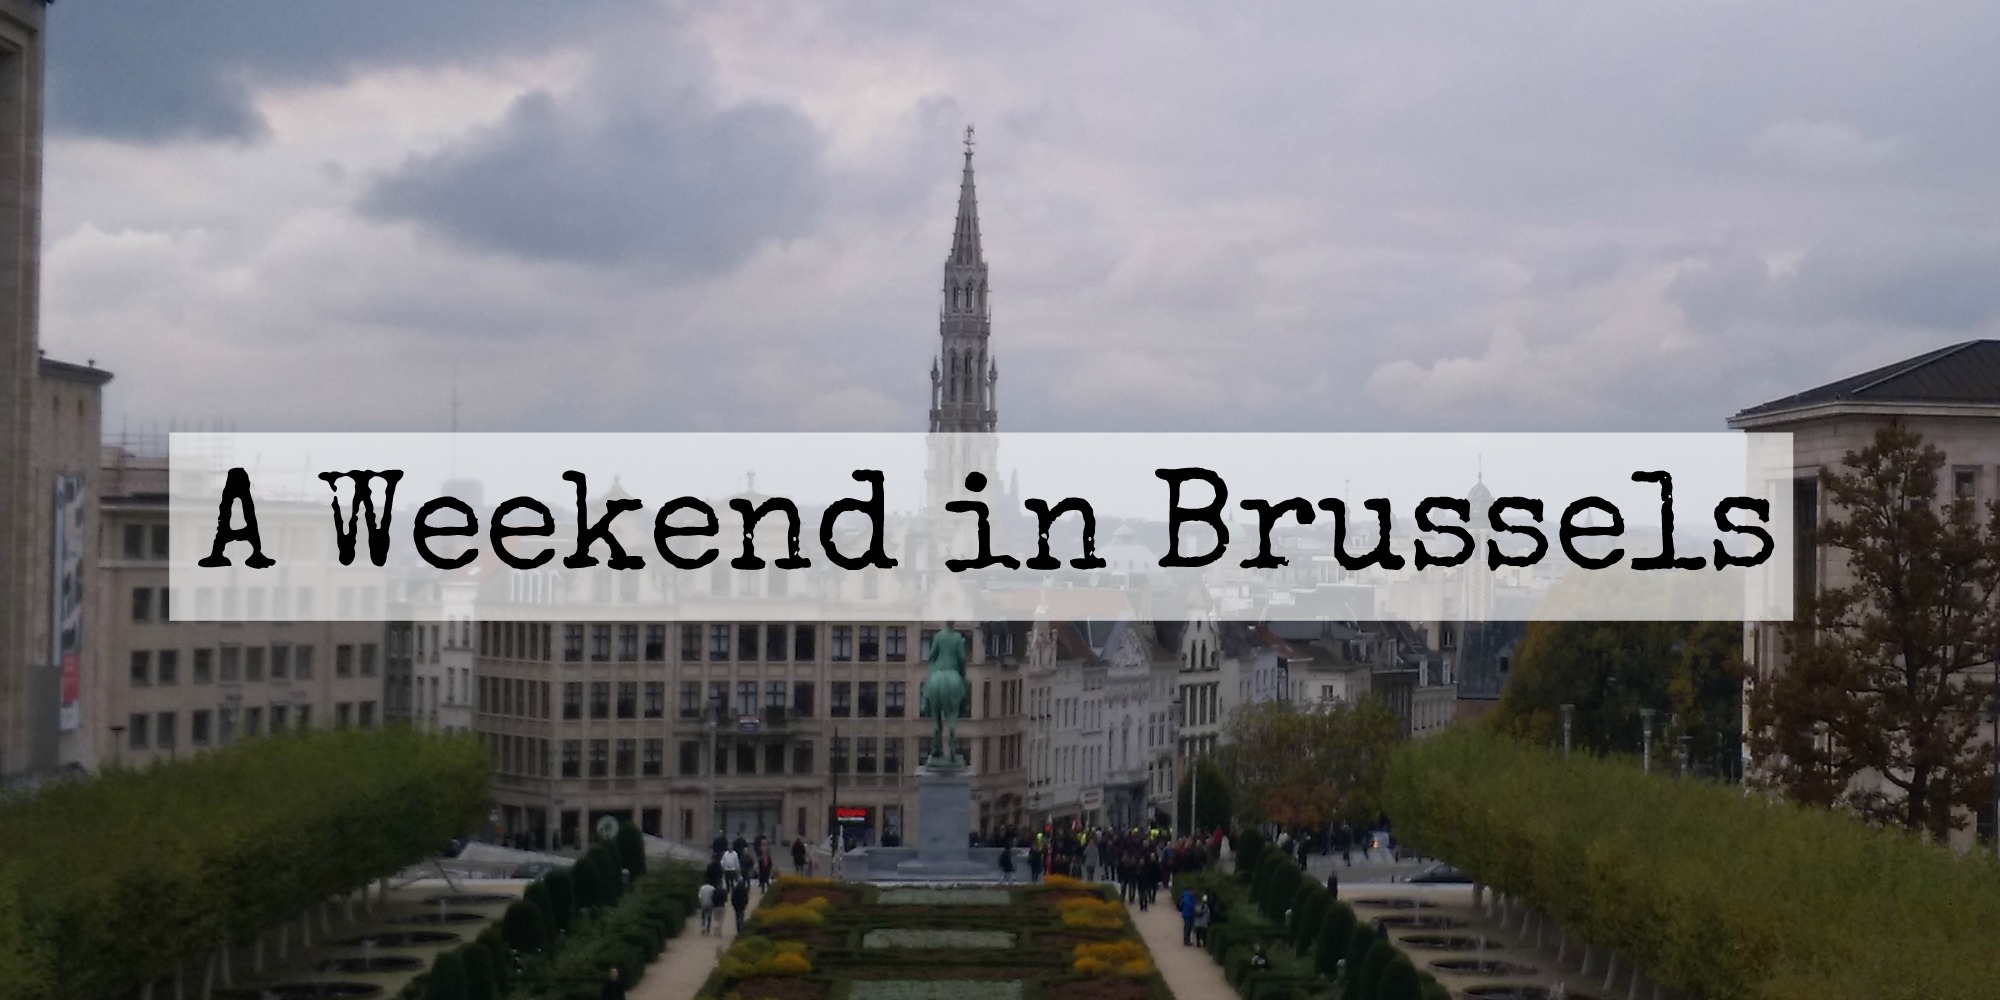 A weekend in Brussels